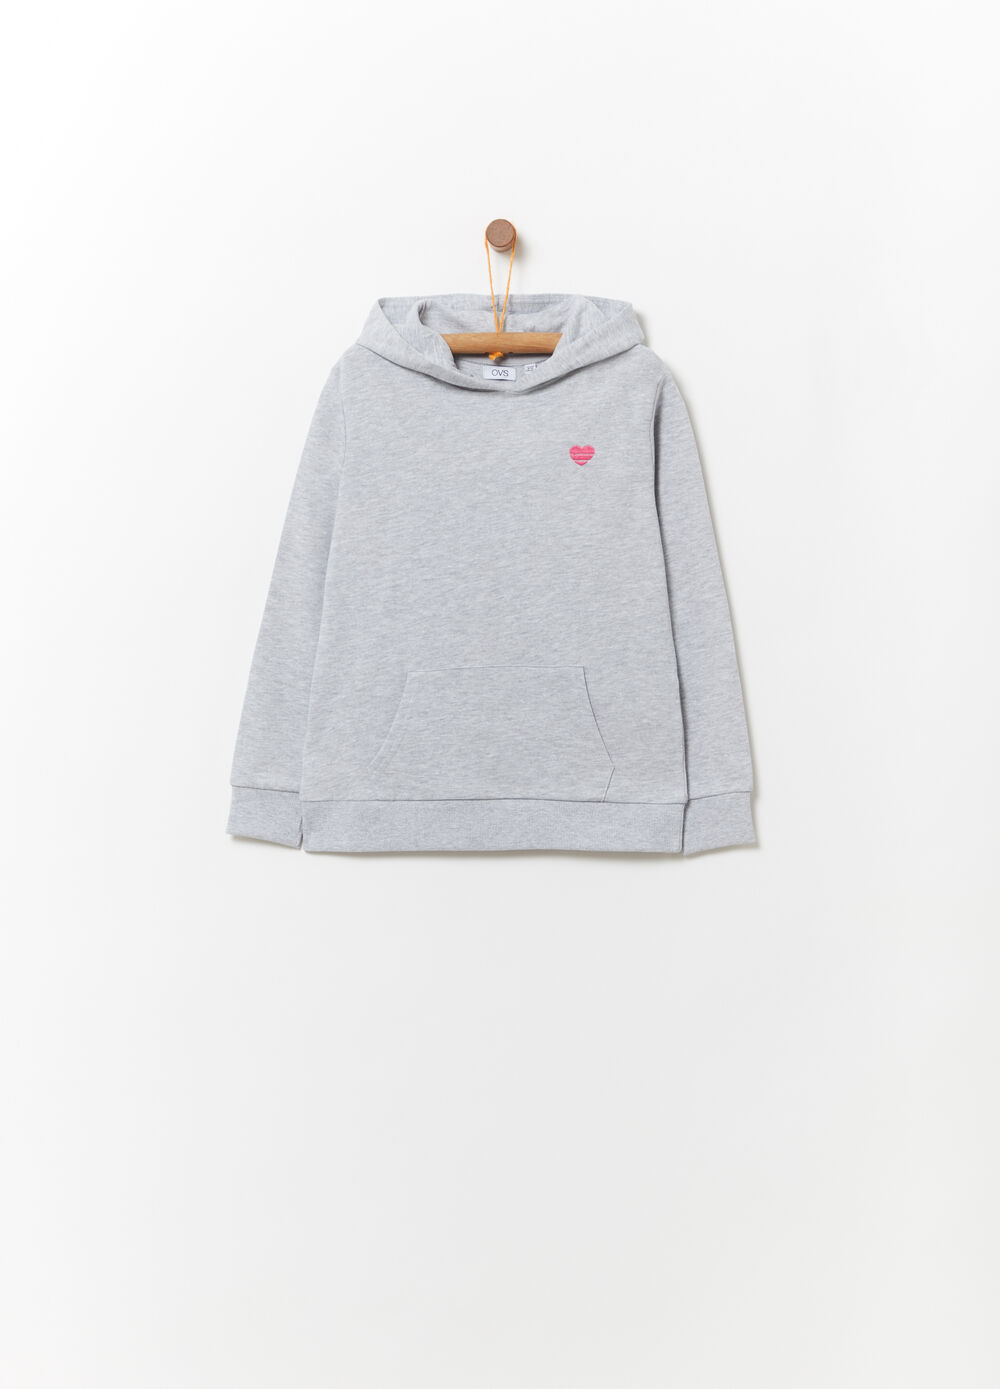 Solid colour sweatshirt with heart embroidery